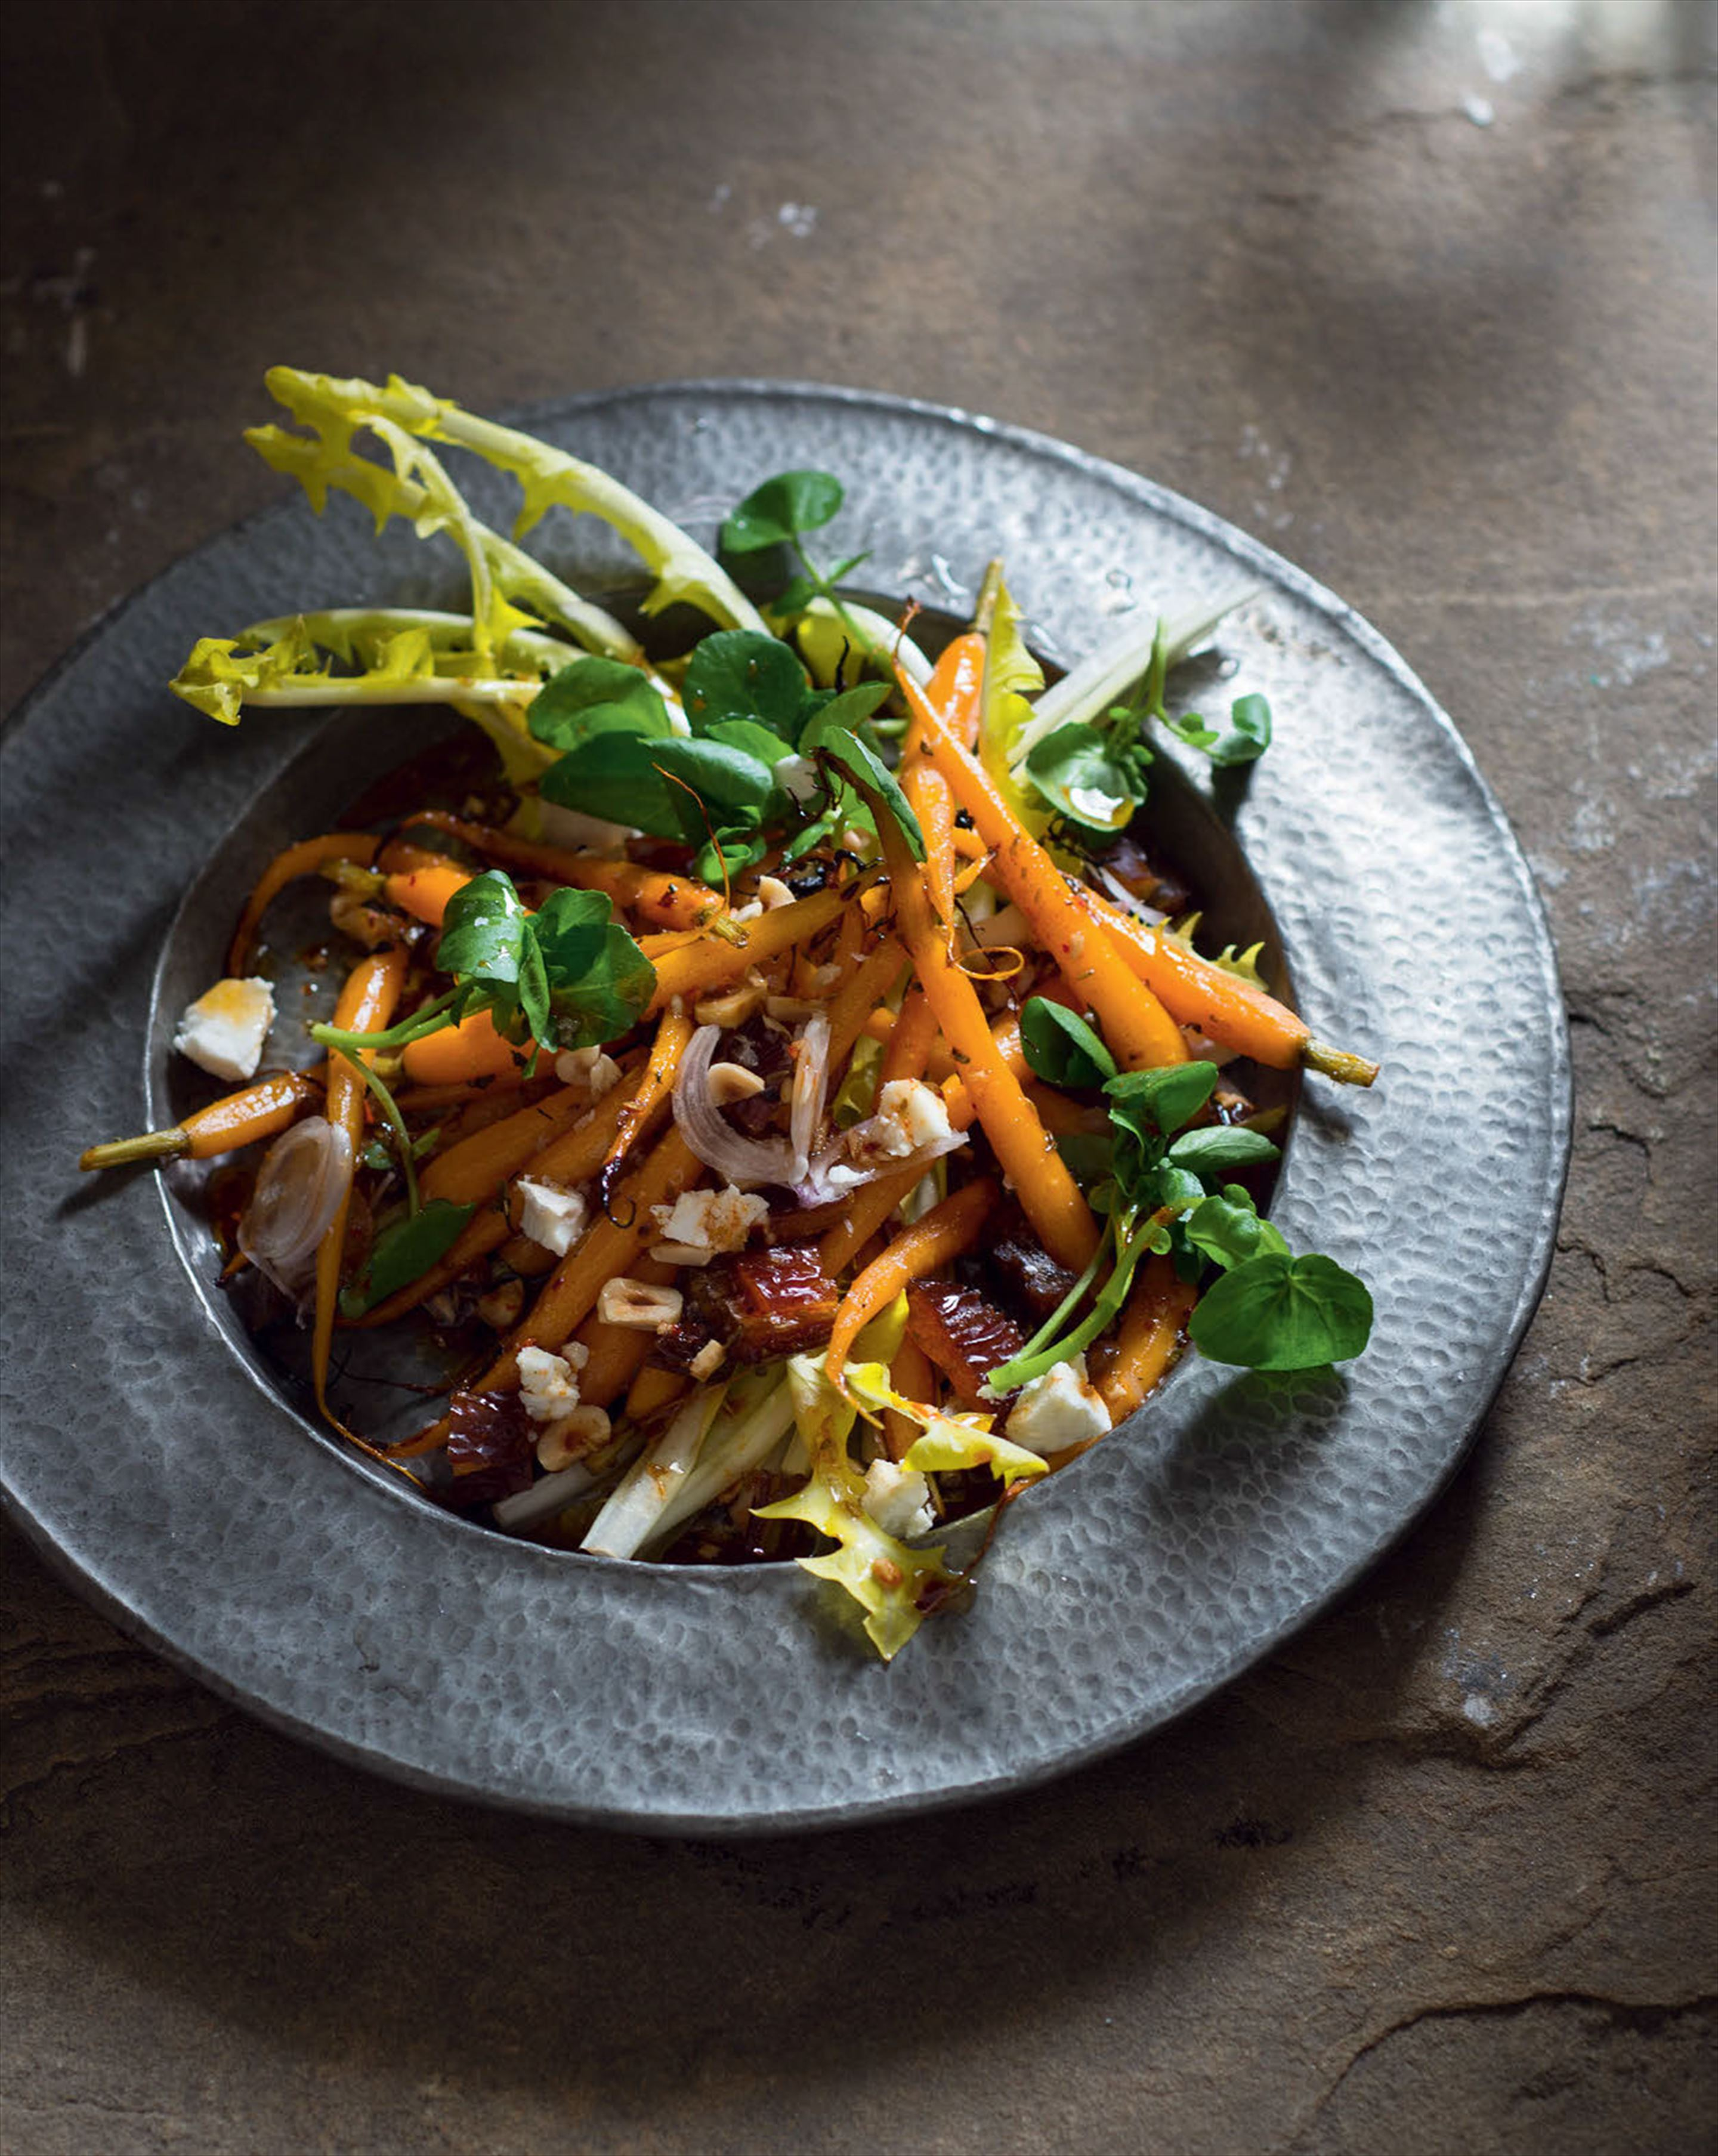 Honey-roasted carrots with dates, dandelions & Moroccan dressing